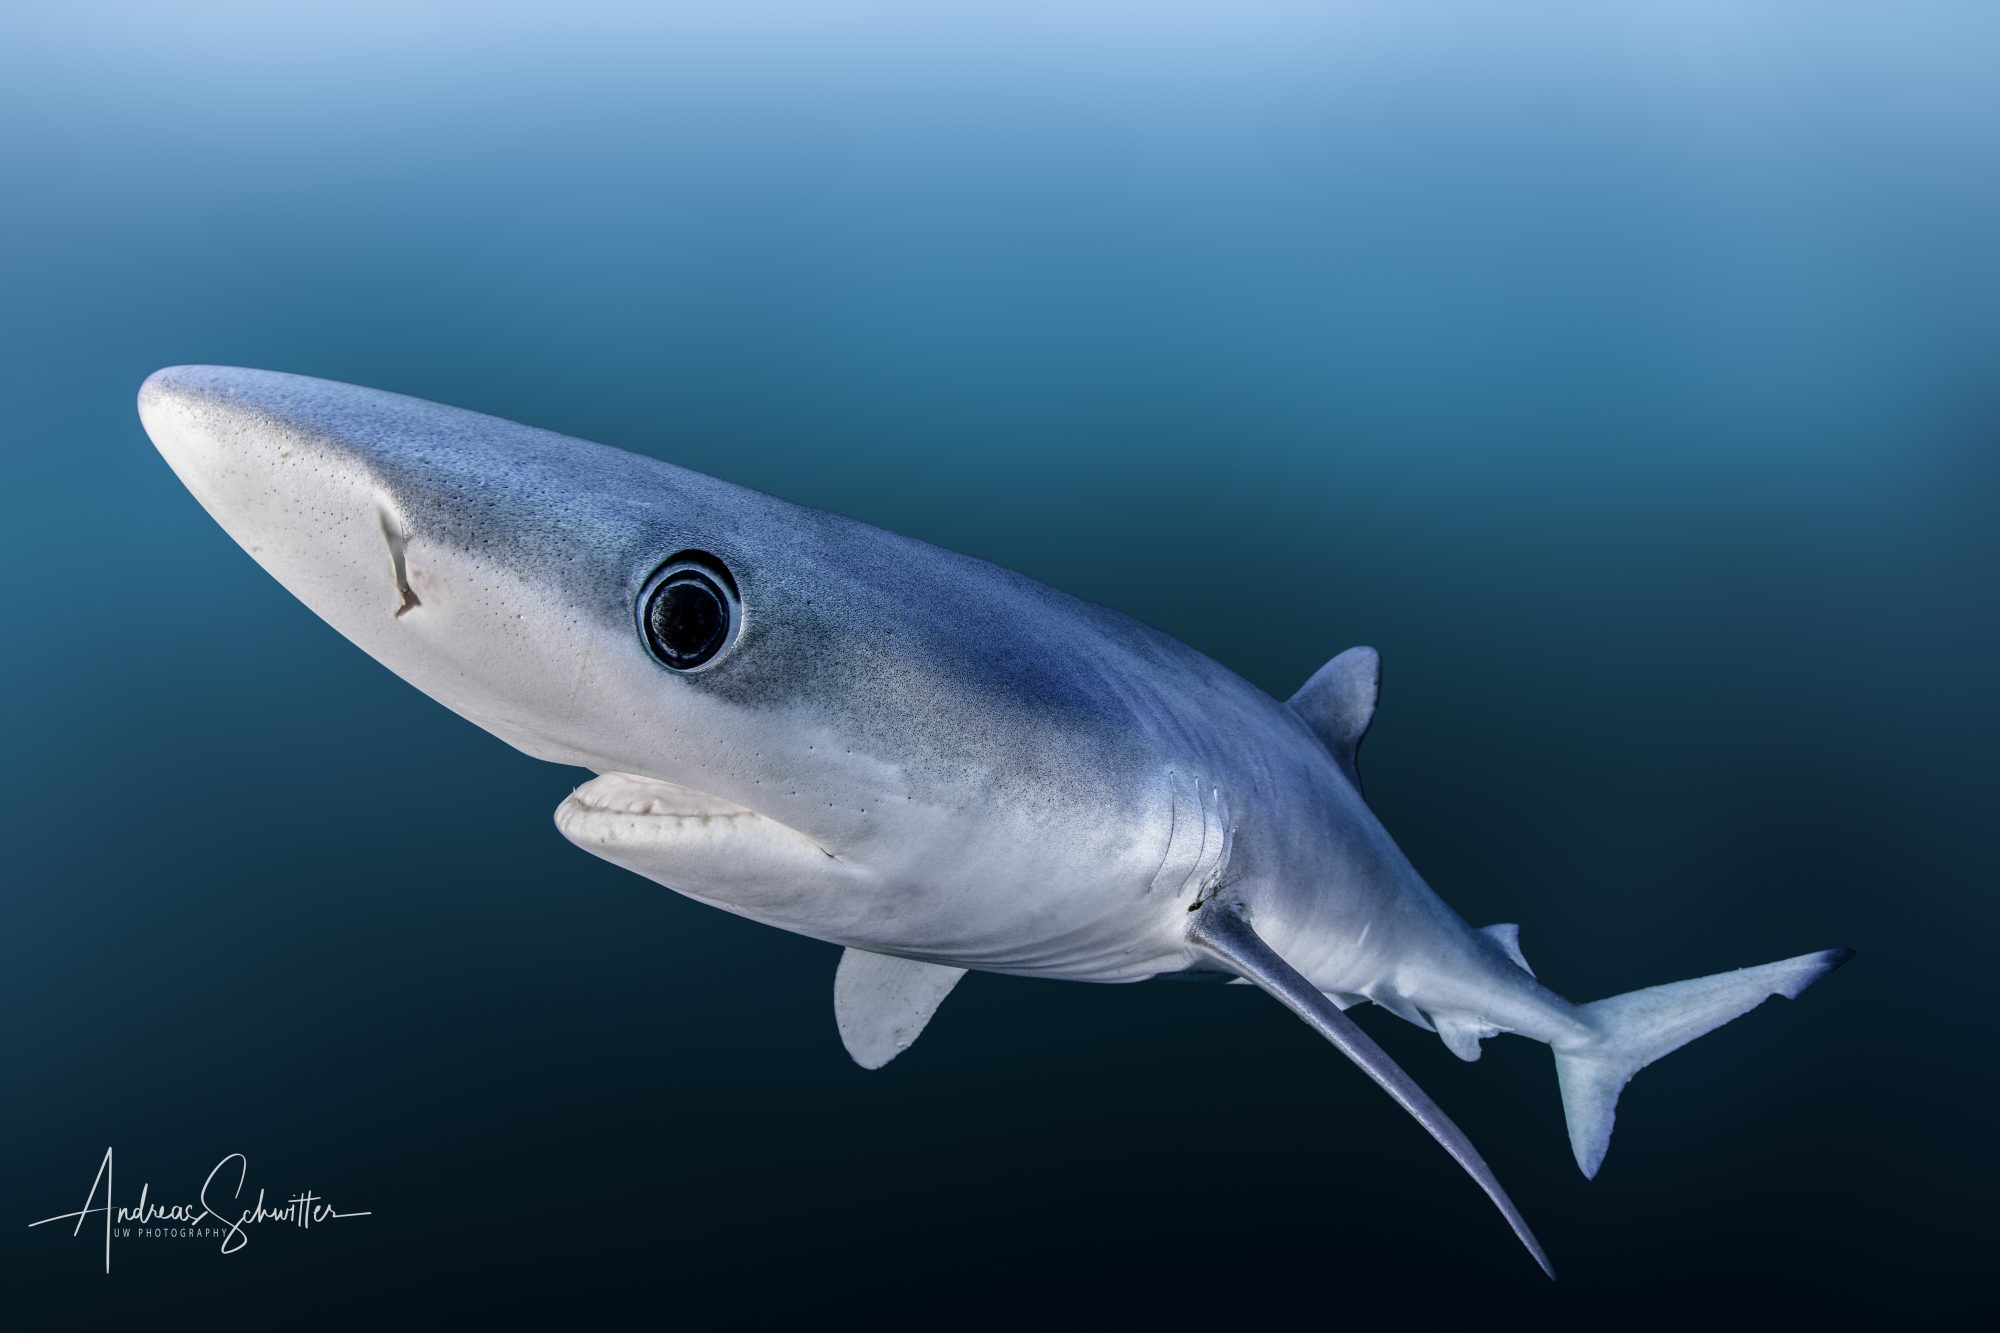 Blue Shark (©Andreas Schwitter)